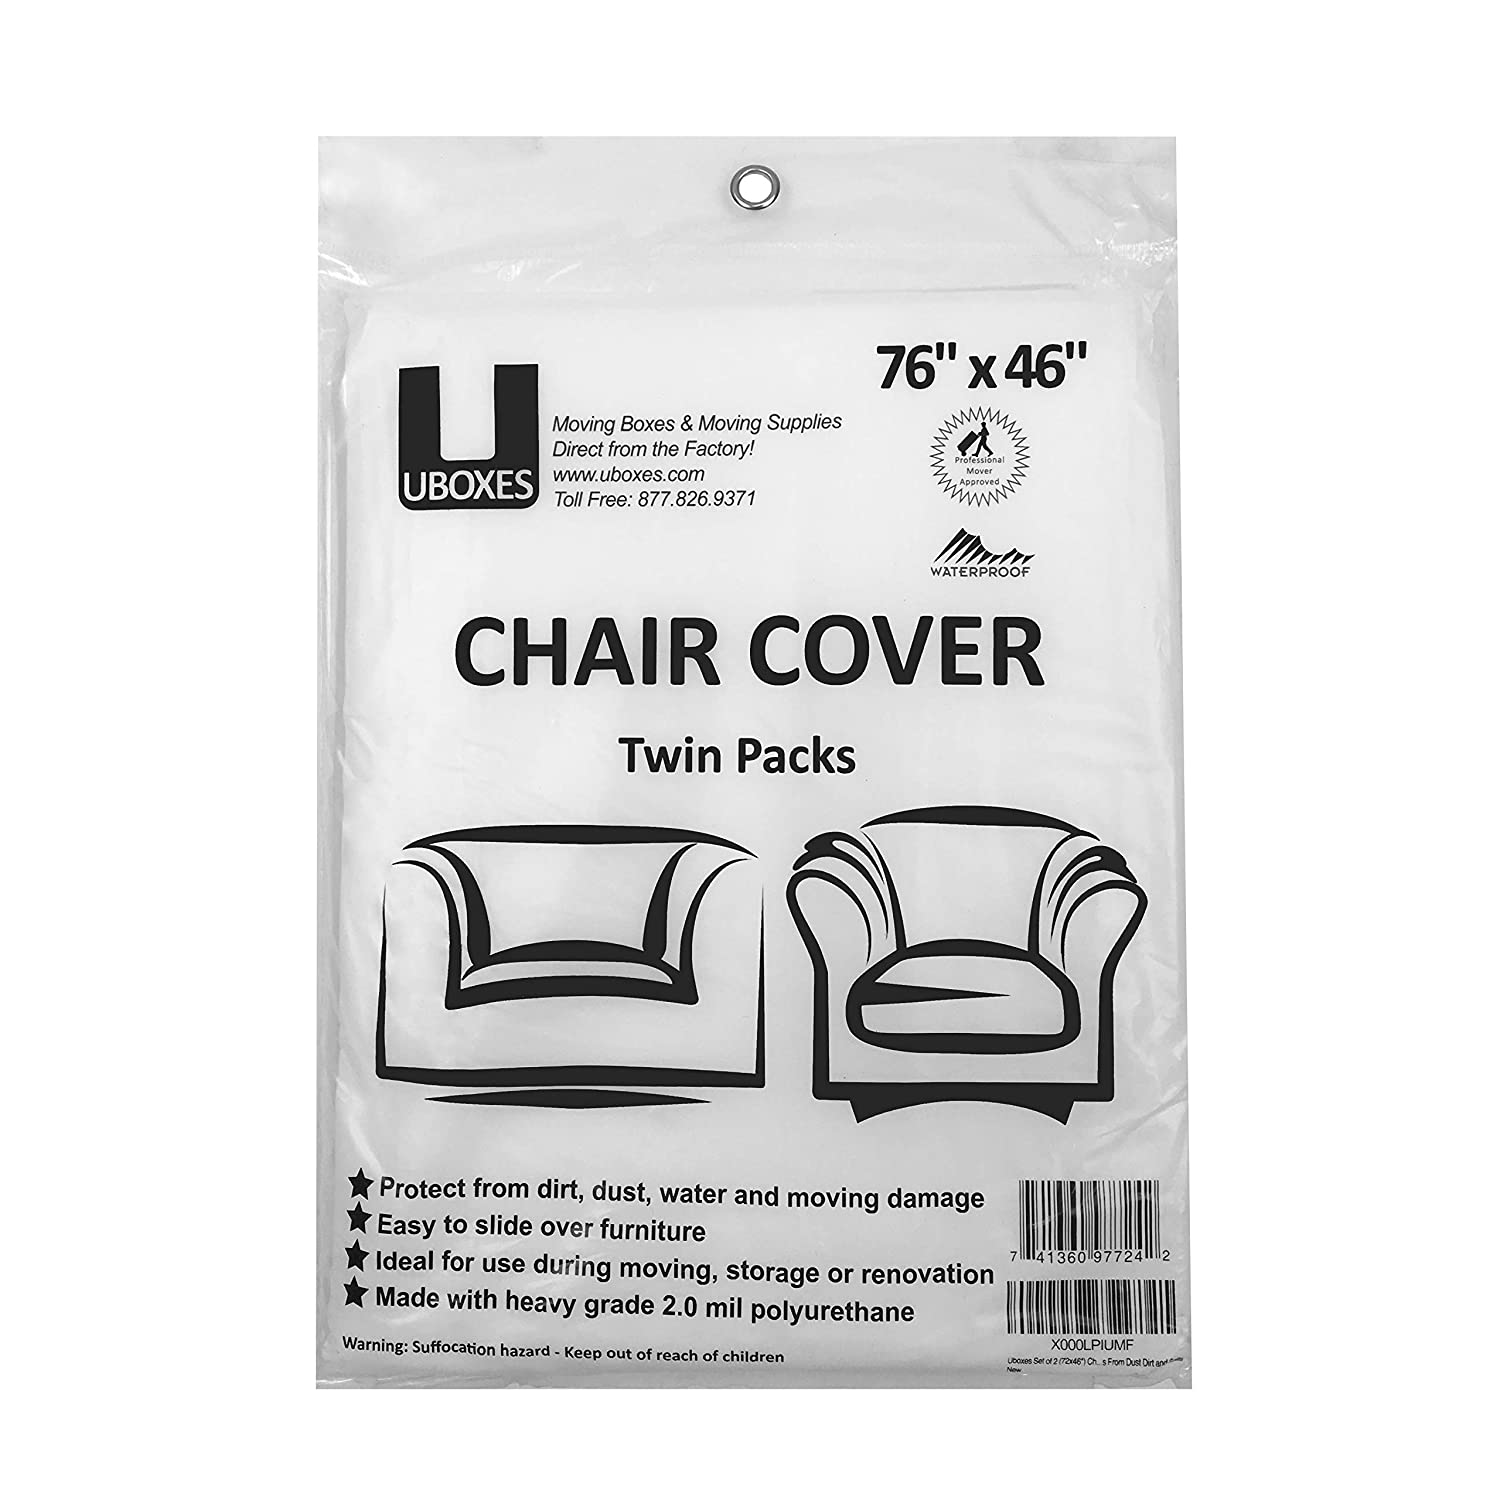 Stupendous Uboxes Chair Cover 2 Pk Andrewgaddart Wooden Chair Designs For Living Room Andrewgaddartcom